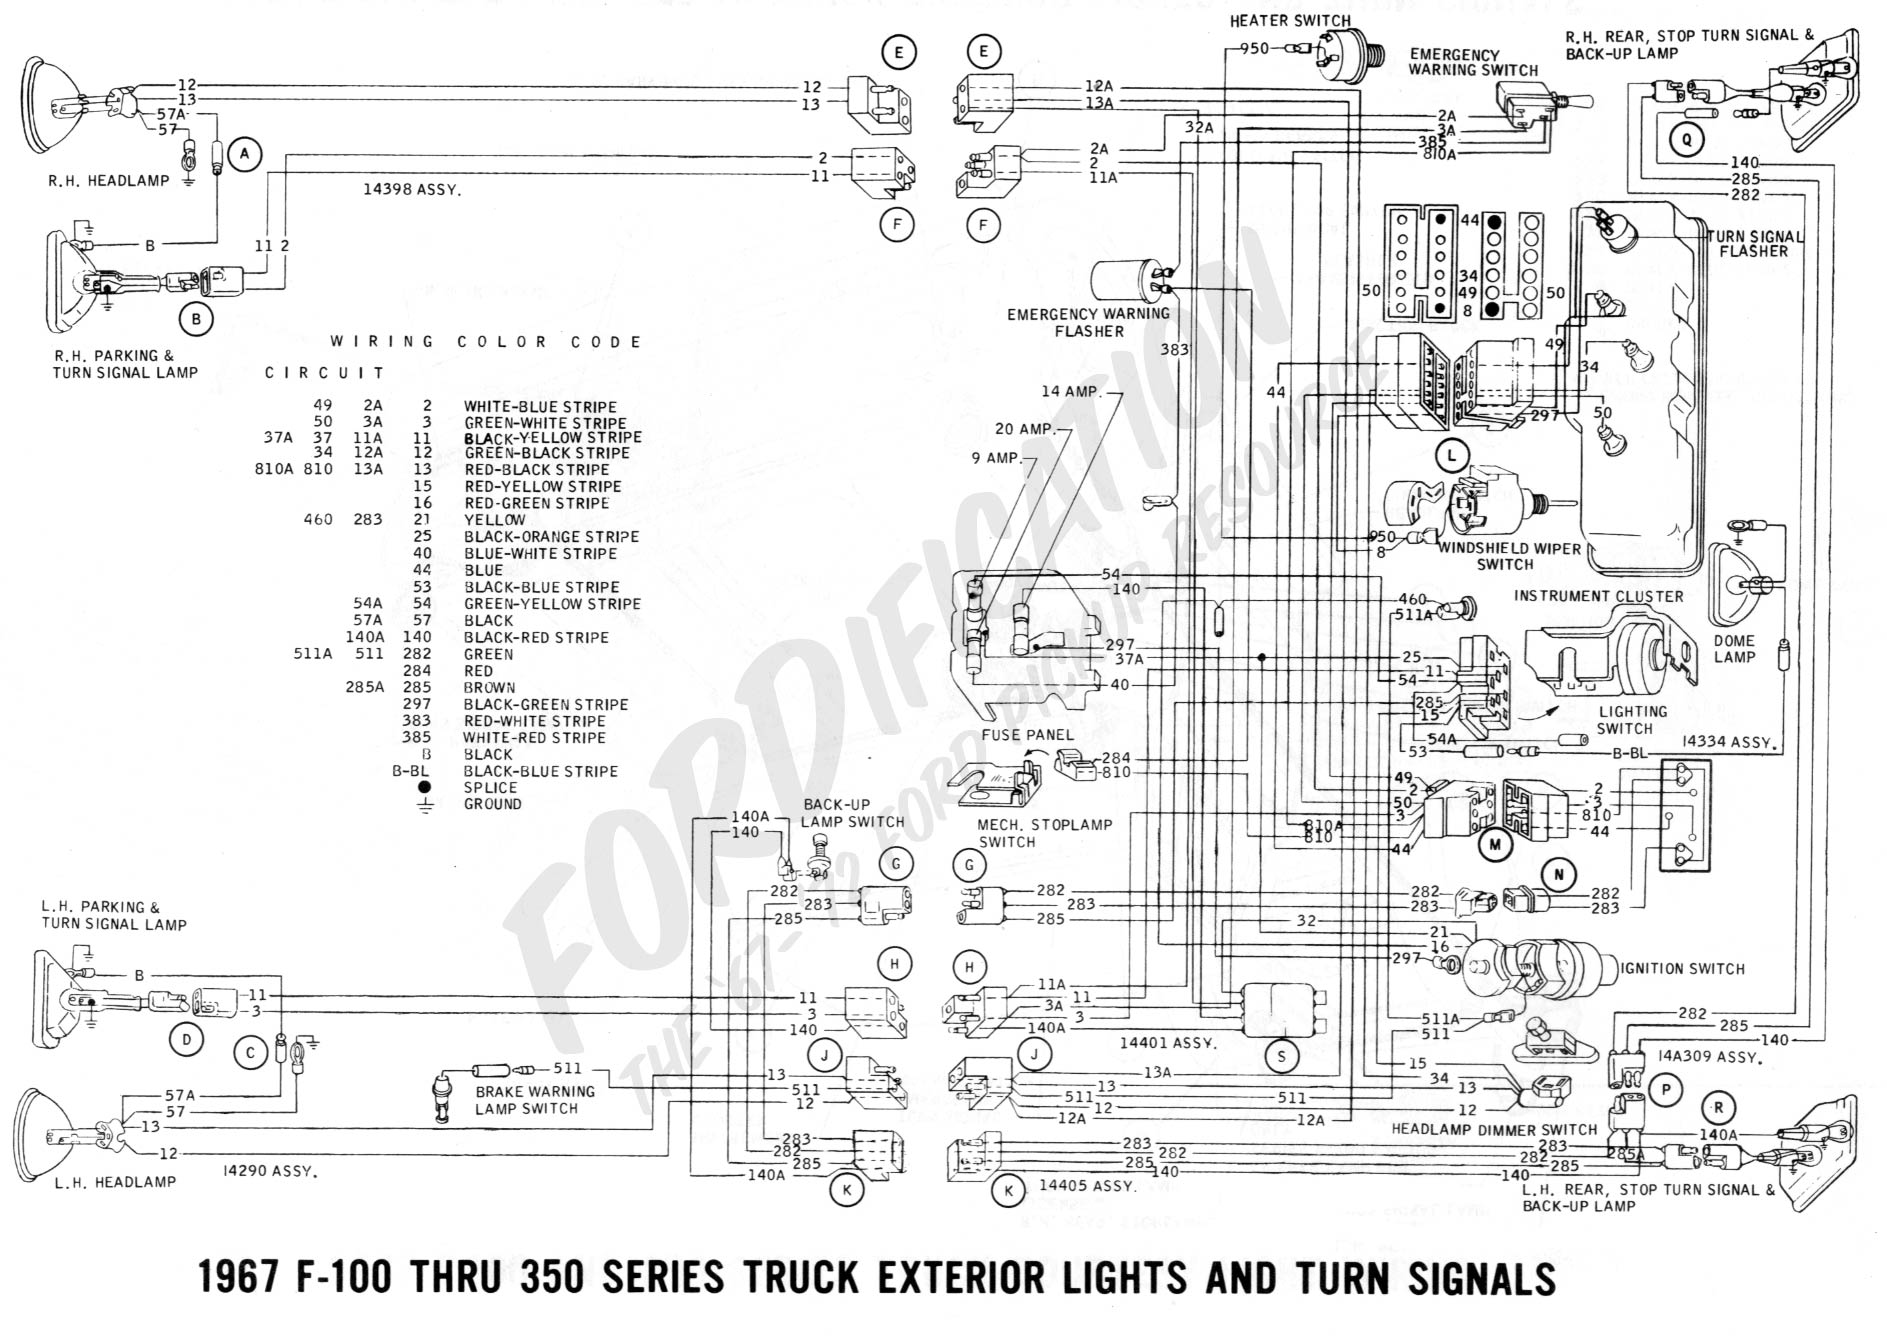 Chevy Impala Fuse Box Diagram As Well 1973 Custom C10 Chevy Truck 1994  Lincoln Town Car Fuse Box Diagram 1973 Chevy Impala Fuse Box Diagram